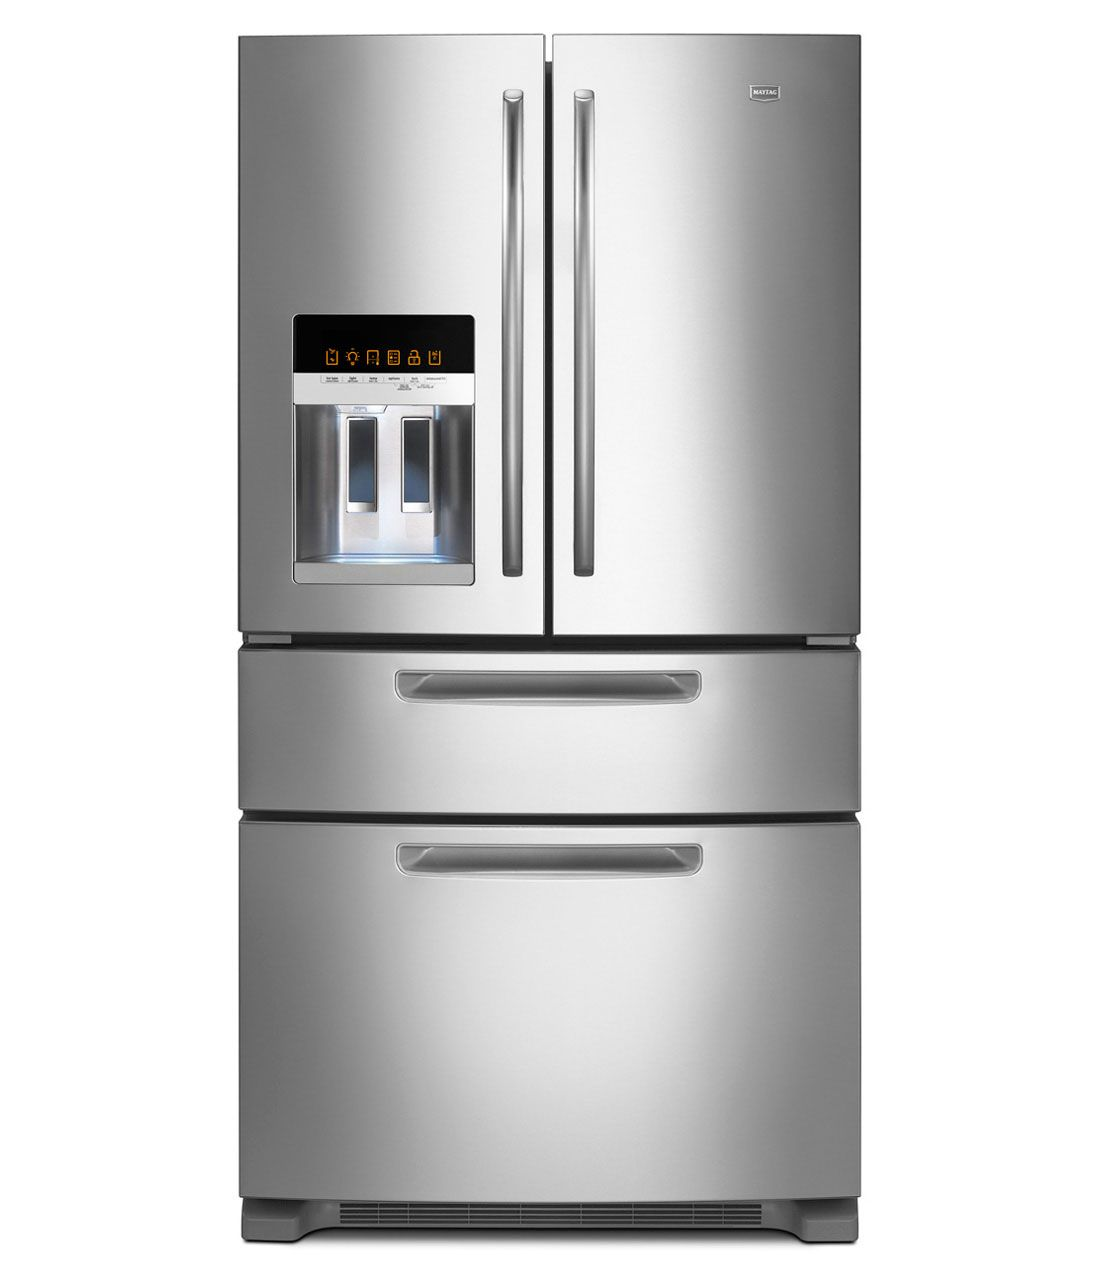 Refrigerators french doorsbottom freezer ice2o maytag maytag french door refrigerator with easy access refrigerator drawer monochromatic stainless steel rubansaba